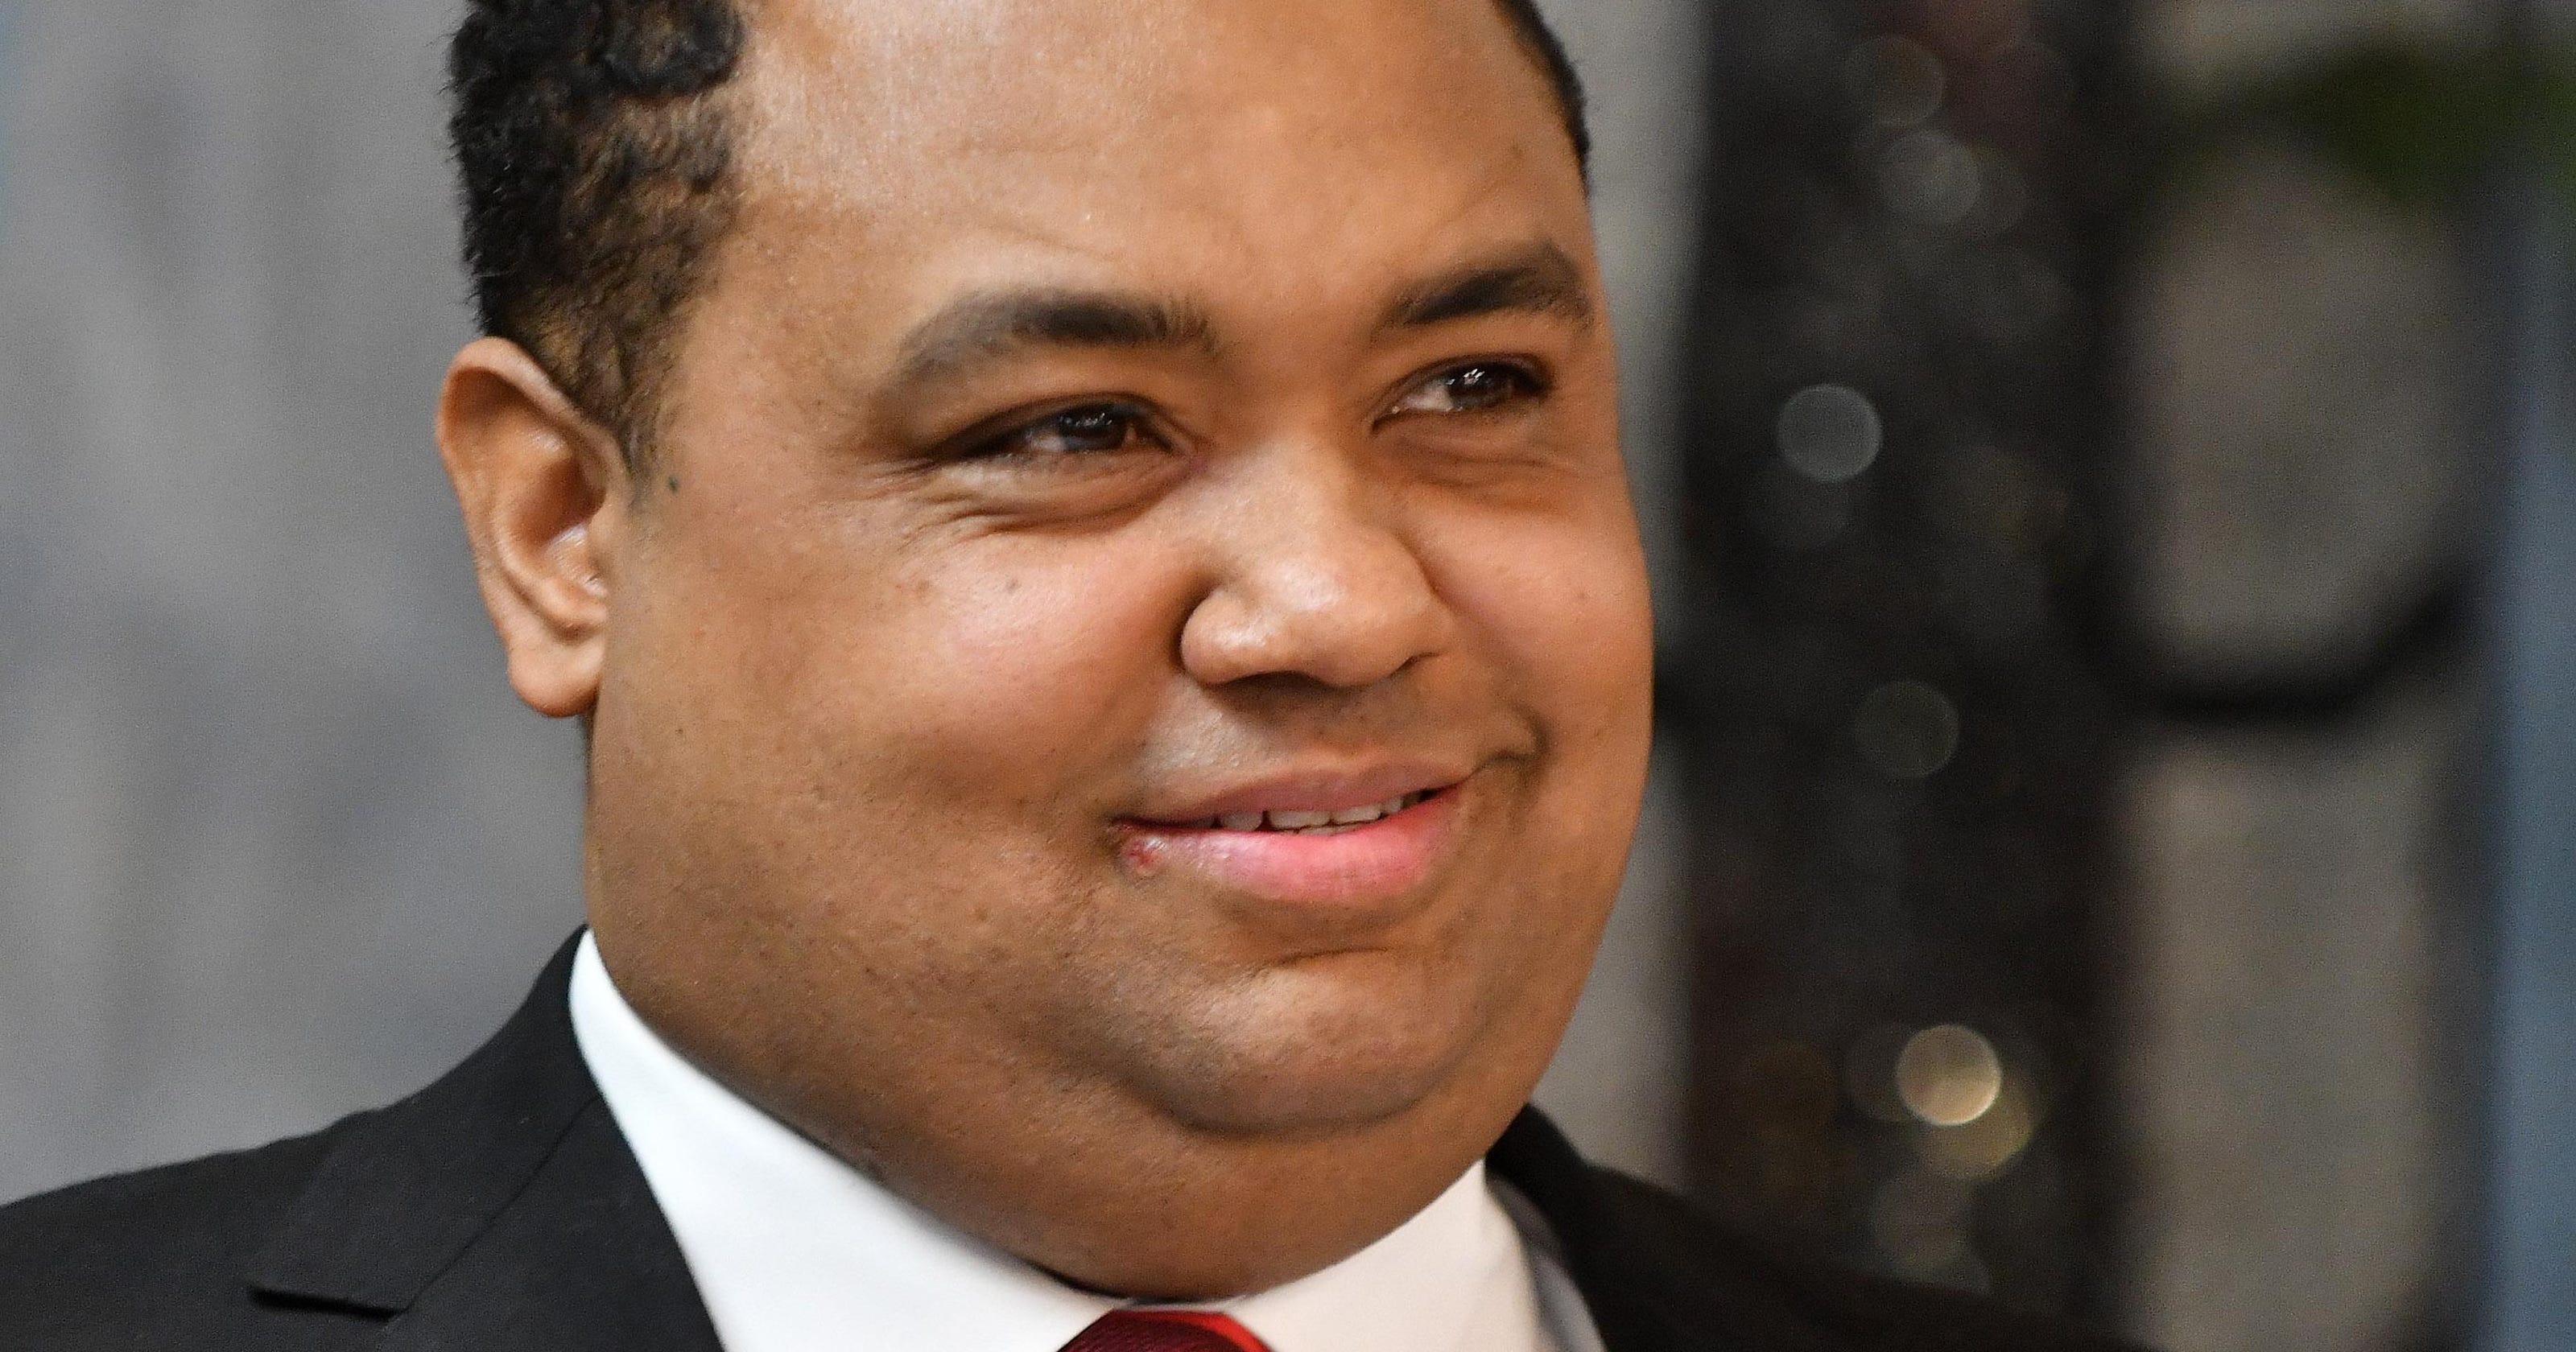 Coleman Young II runs for Congress to replace resigned Rep. Conyers